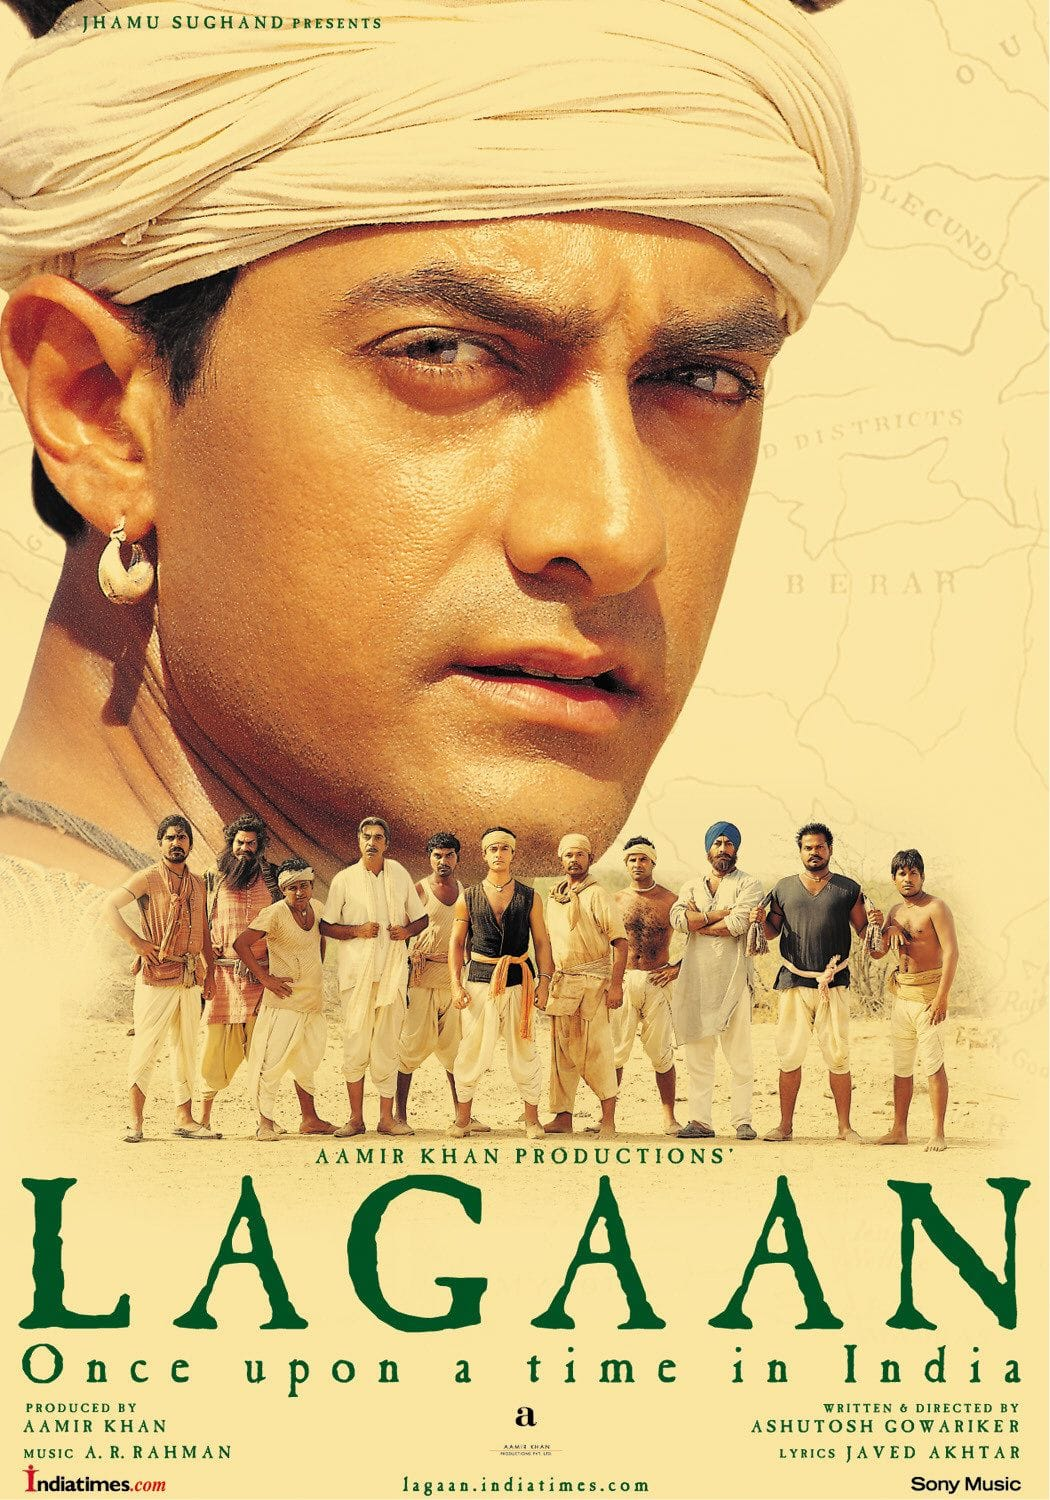 22 Iconic Bollywood Posters